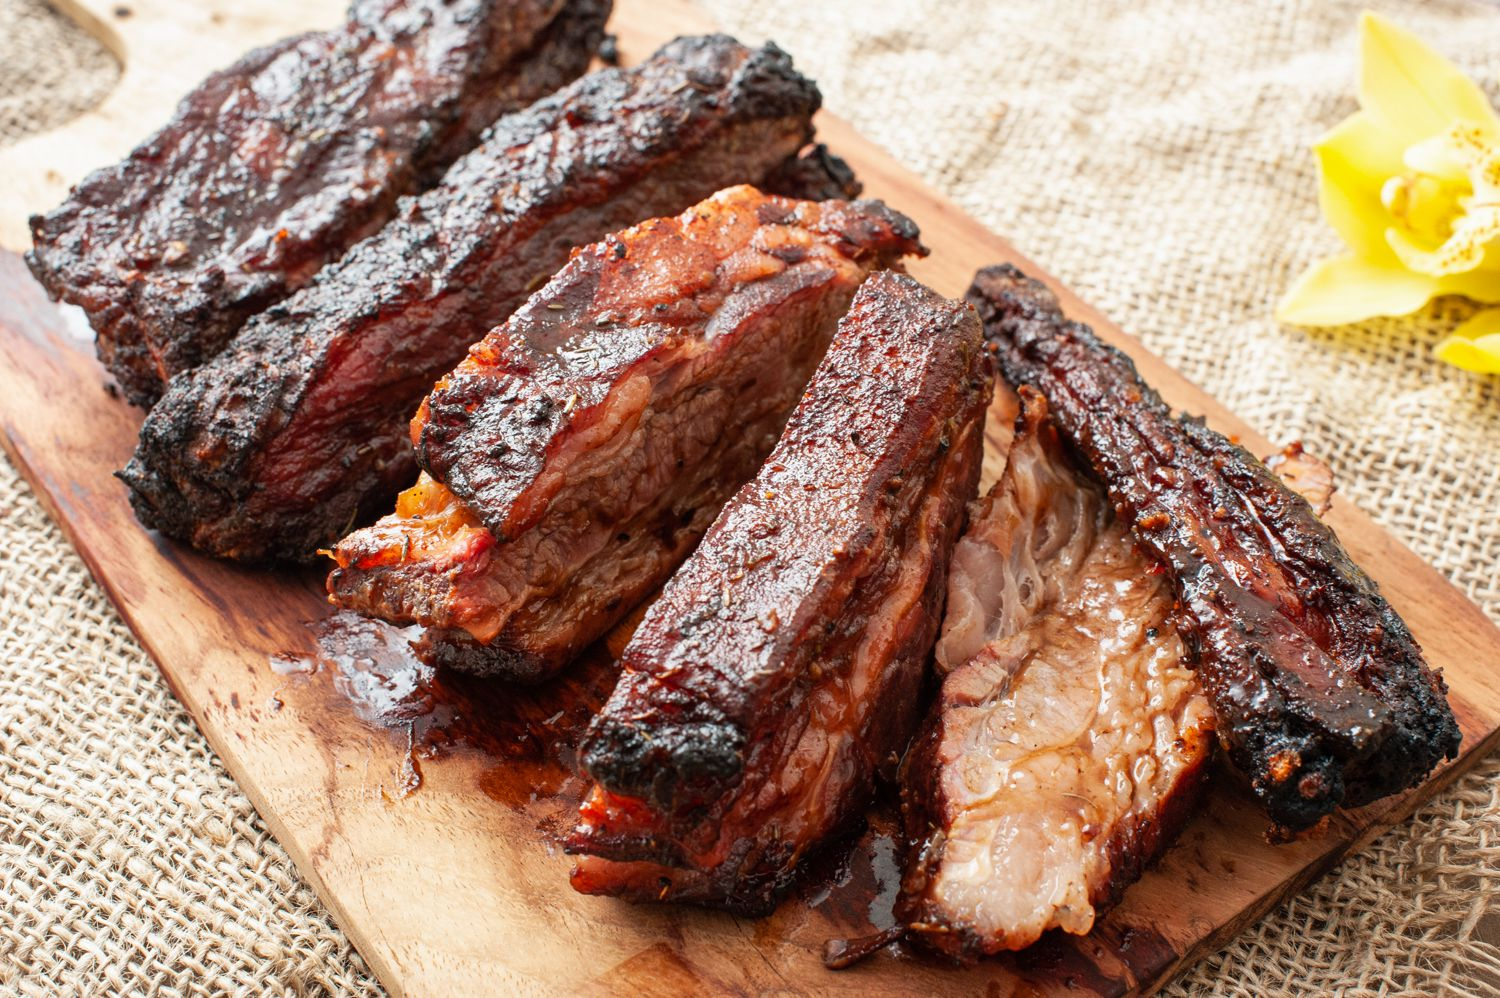 How Do You Make Unforgettable Slow-Grilled Beef Ribs?